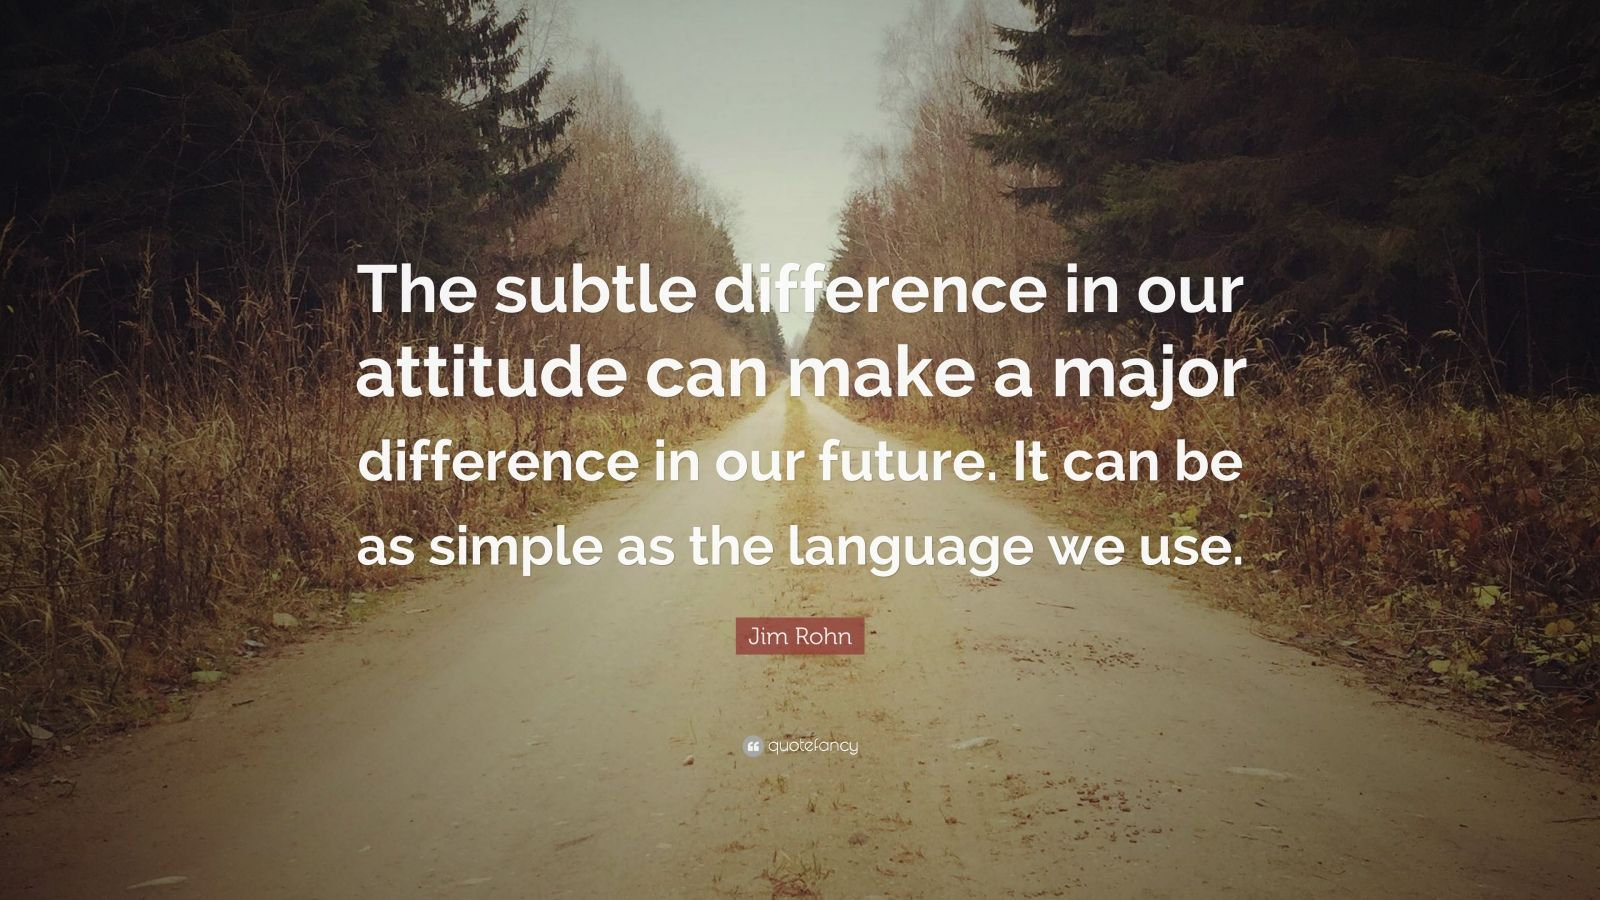 """Jim Rohn Quote: """"The subtle difference in our attitude can make a major difference in our future. It can be as simple as the language we use."""""""